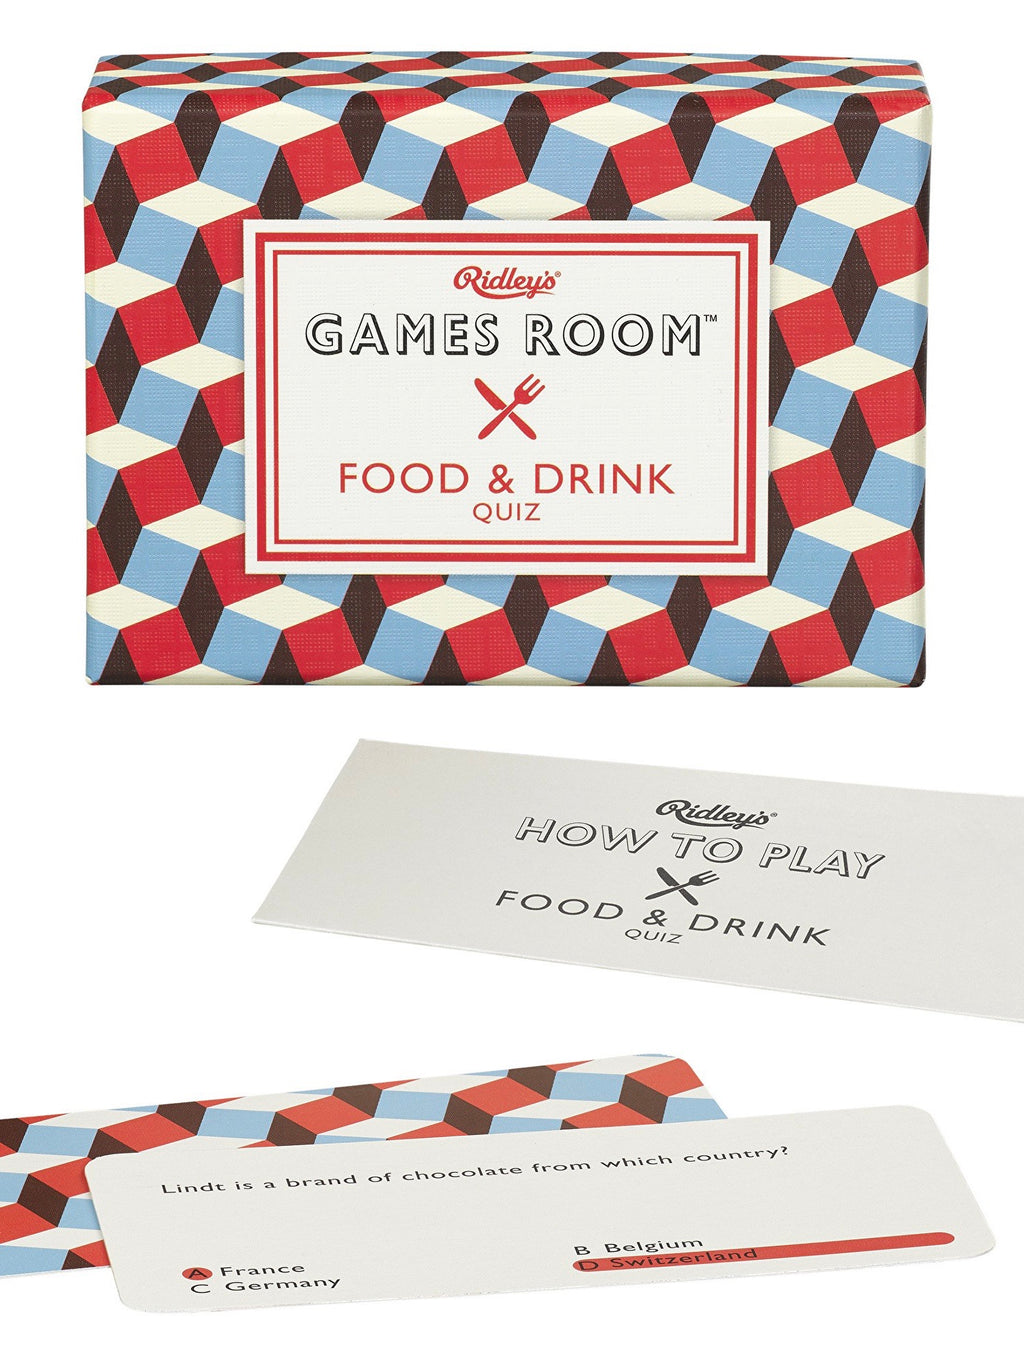 Food & Drink Trivia Quiz Game